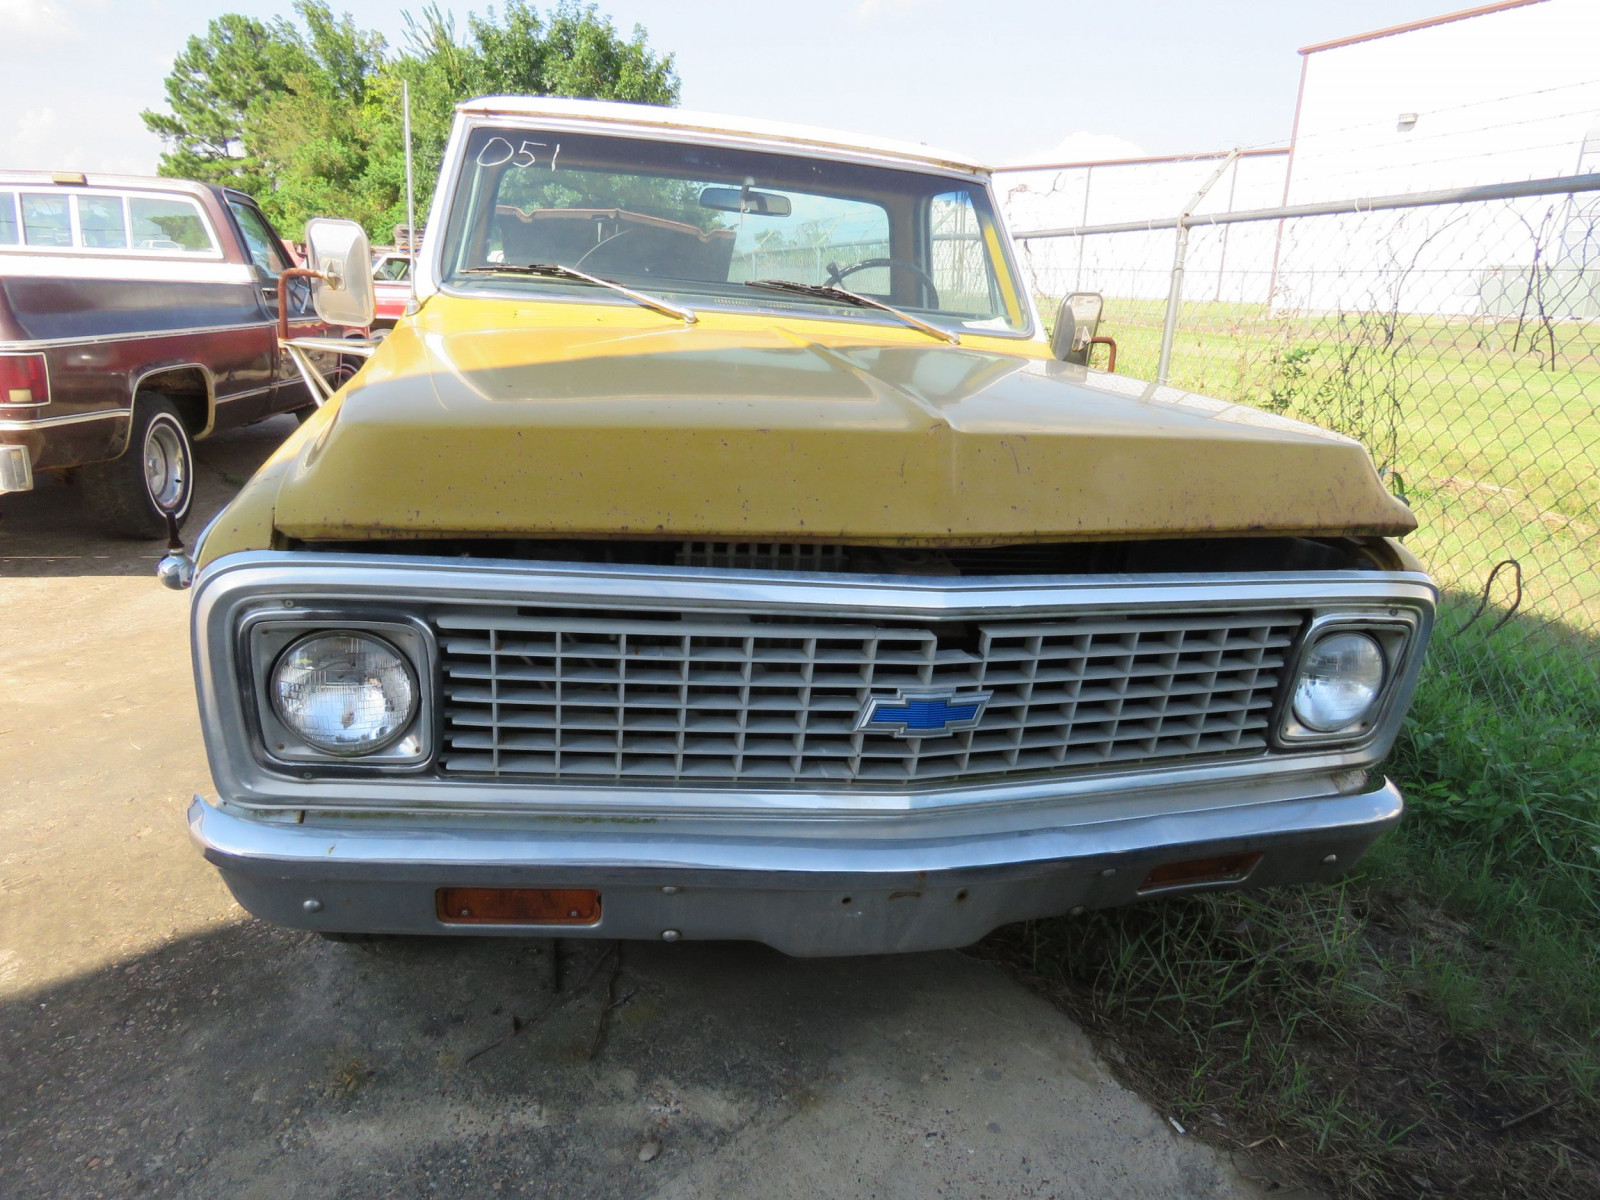 1972 Chevrolet Custom C20 Pickup - Image 2